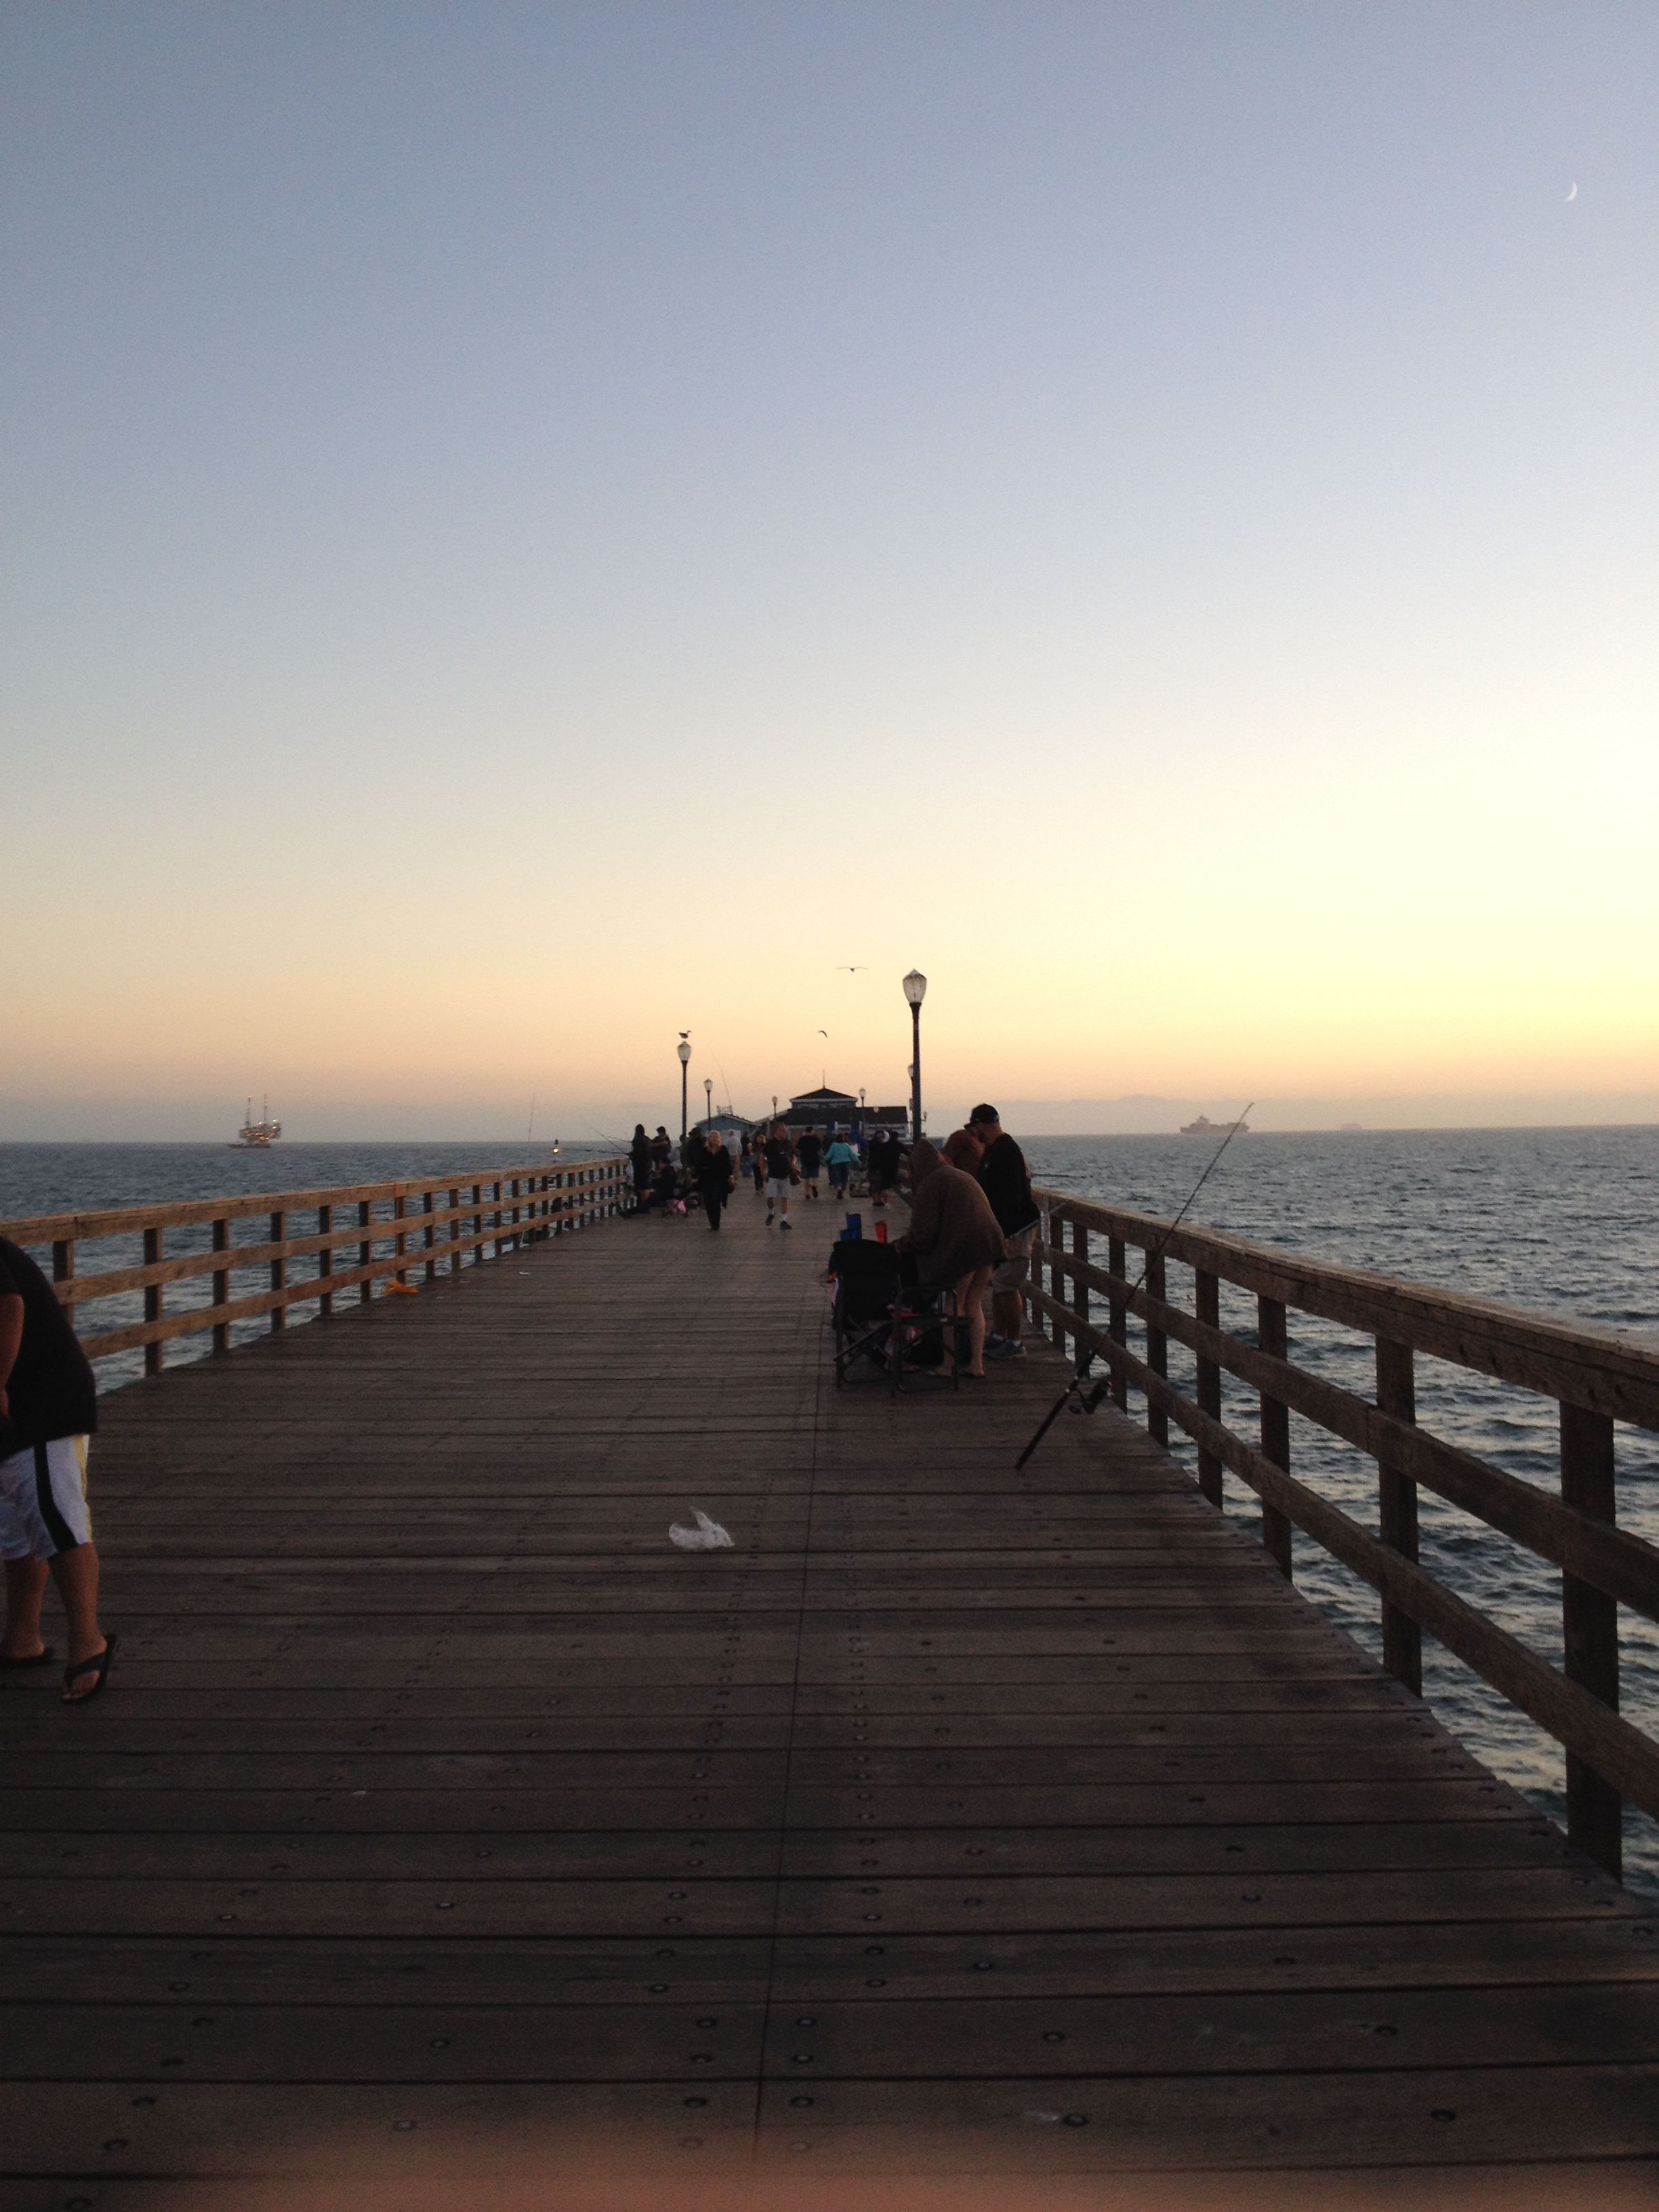 Walking the pier in Seal Beach.